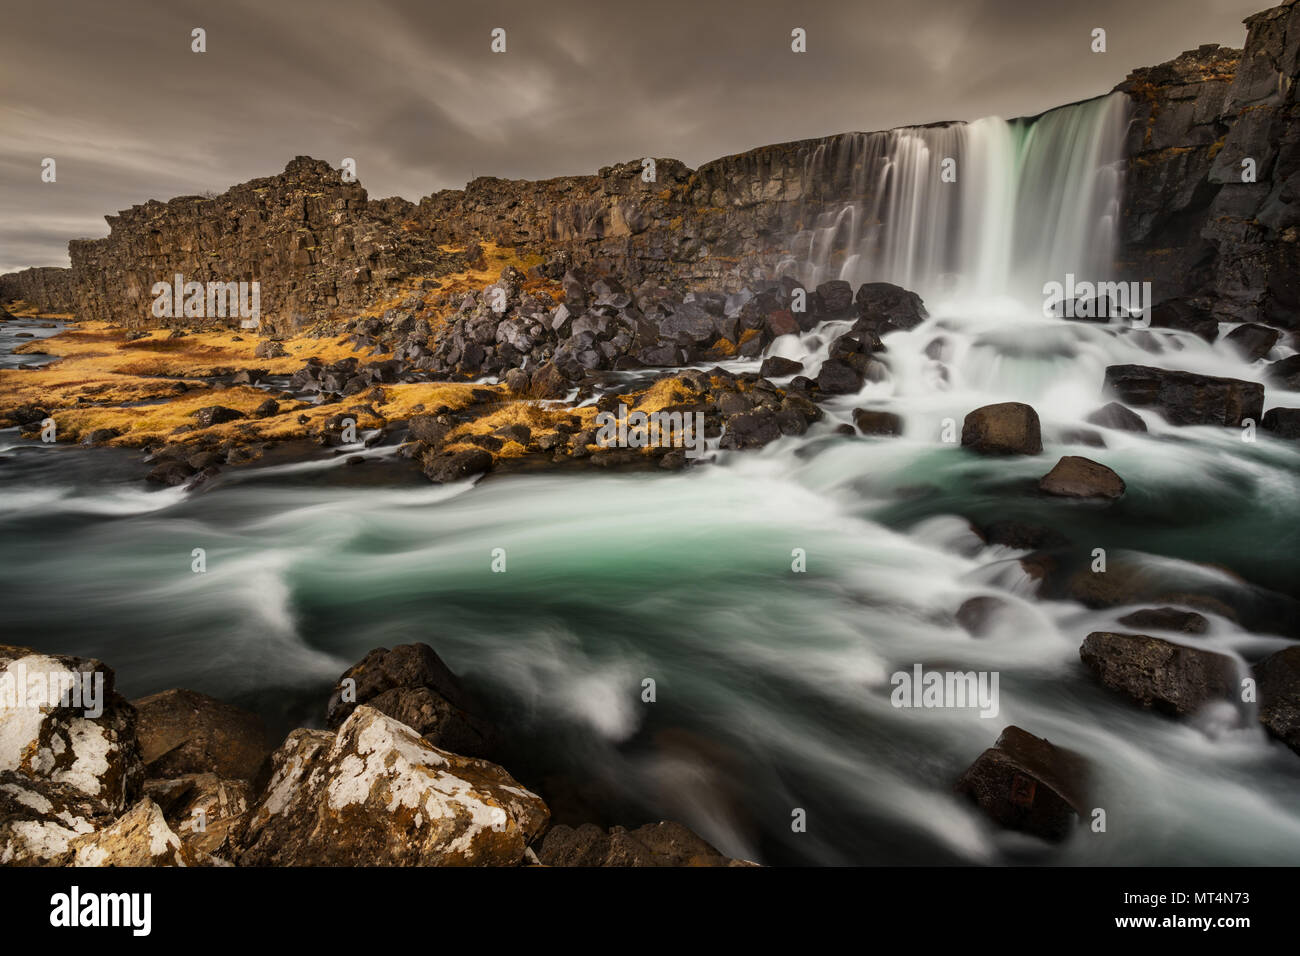 Berühmte Öxarárfoss in Þingvellir-Nationalpark. Stockbild